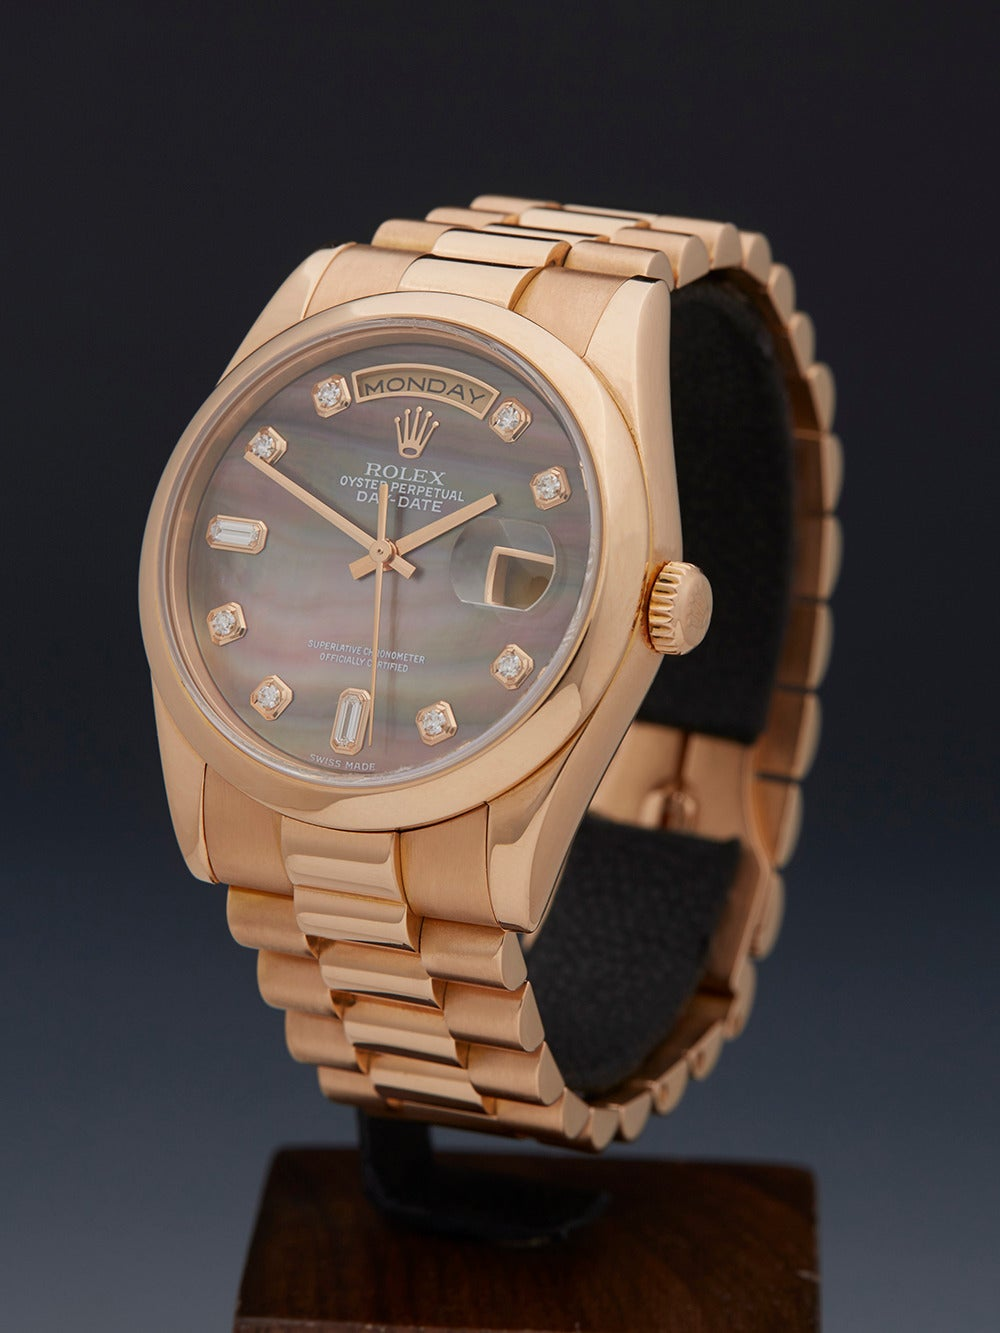 Rolex Lady's Rose Gold Mother-of-Pearl Dial Automatic Wristwatch Ref 118205 2